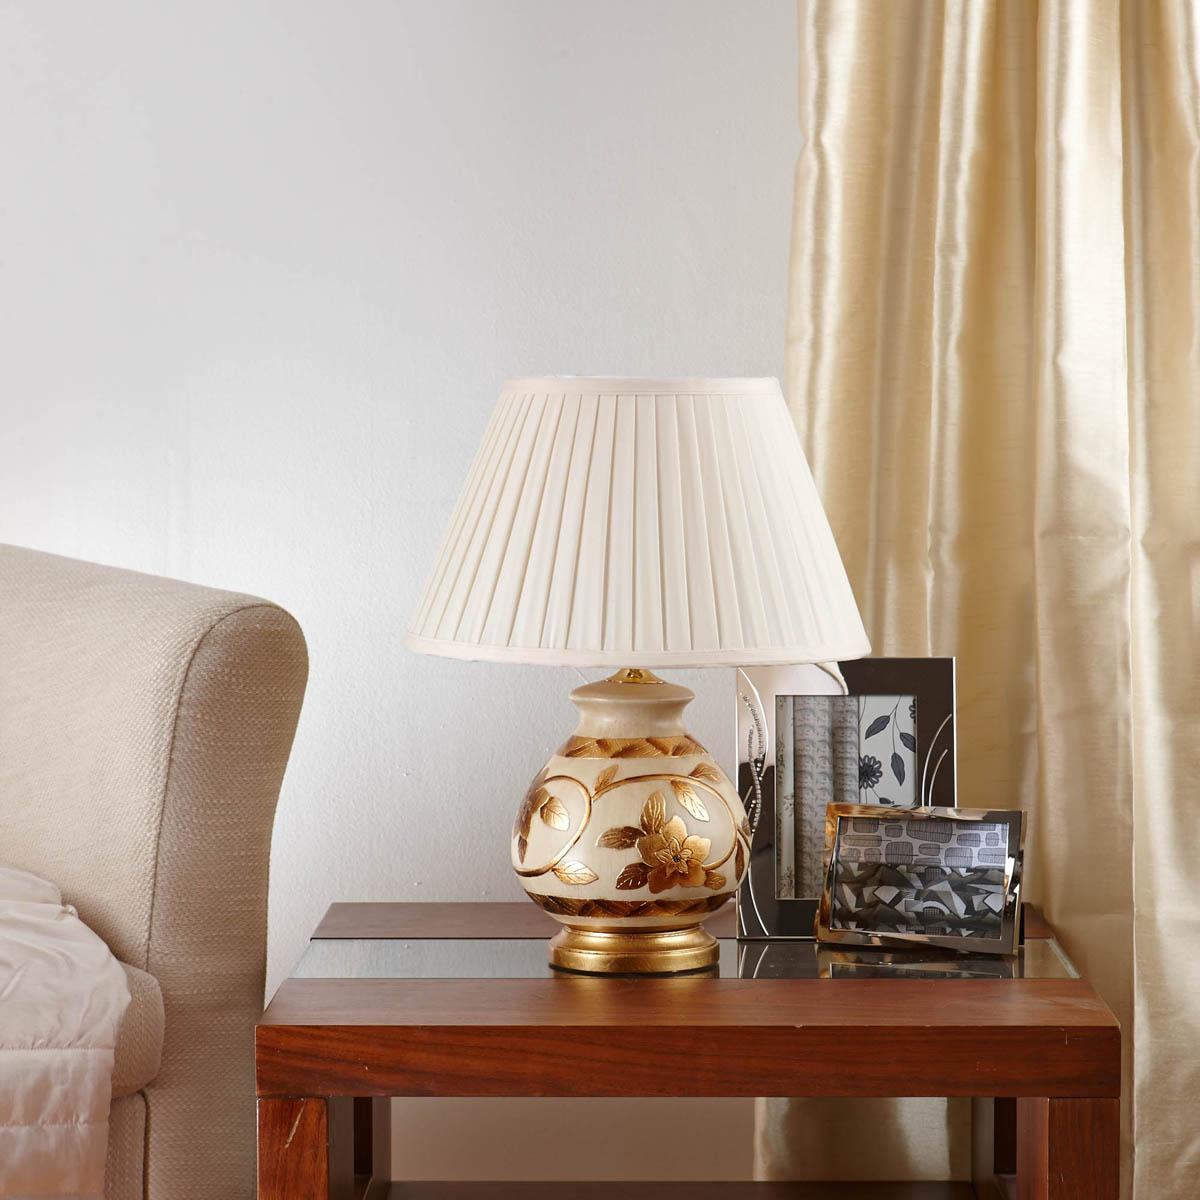 Stockists of Beige Christabelle Table Lamp